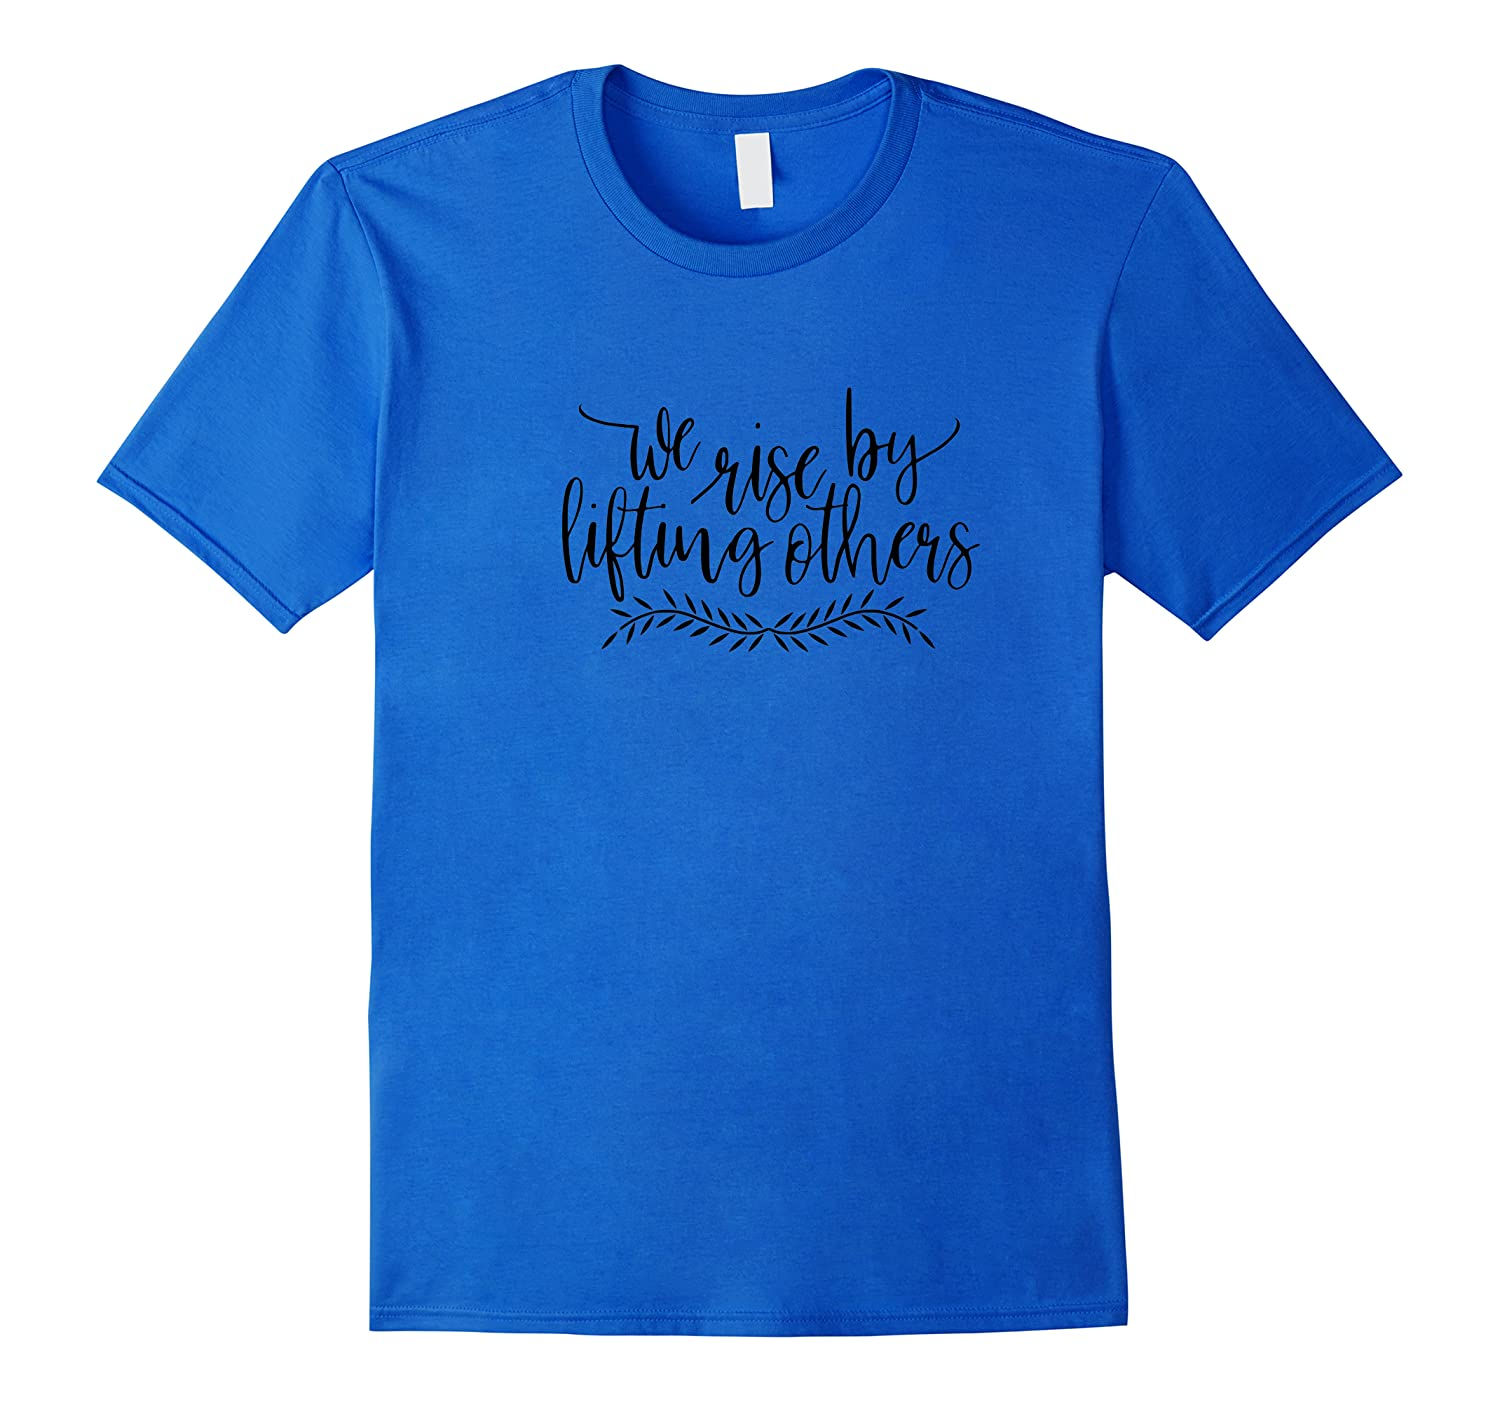 We Rise By Lifting Others Good Soul Swag Shirts